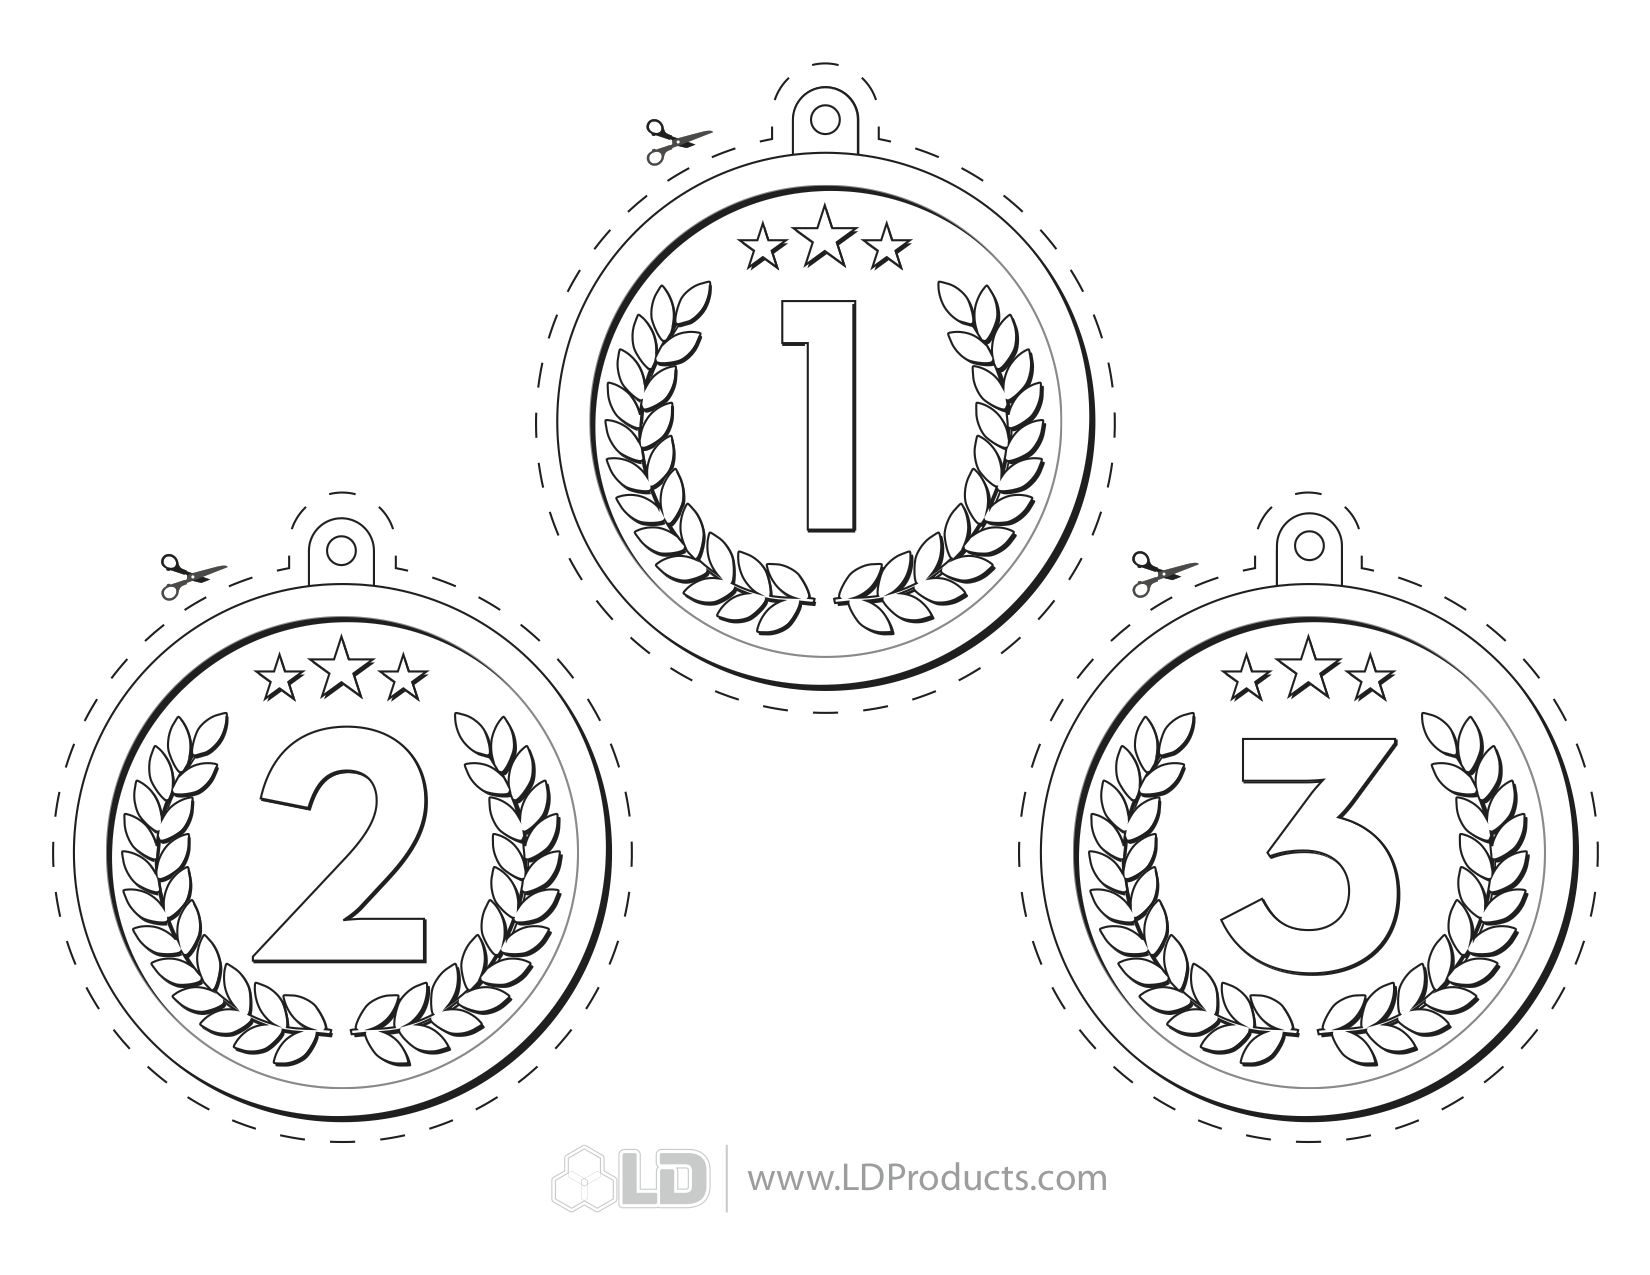 35 Olympic Medal Coloring Pages